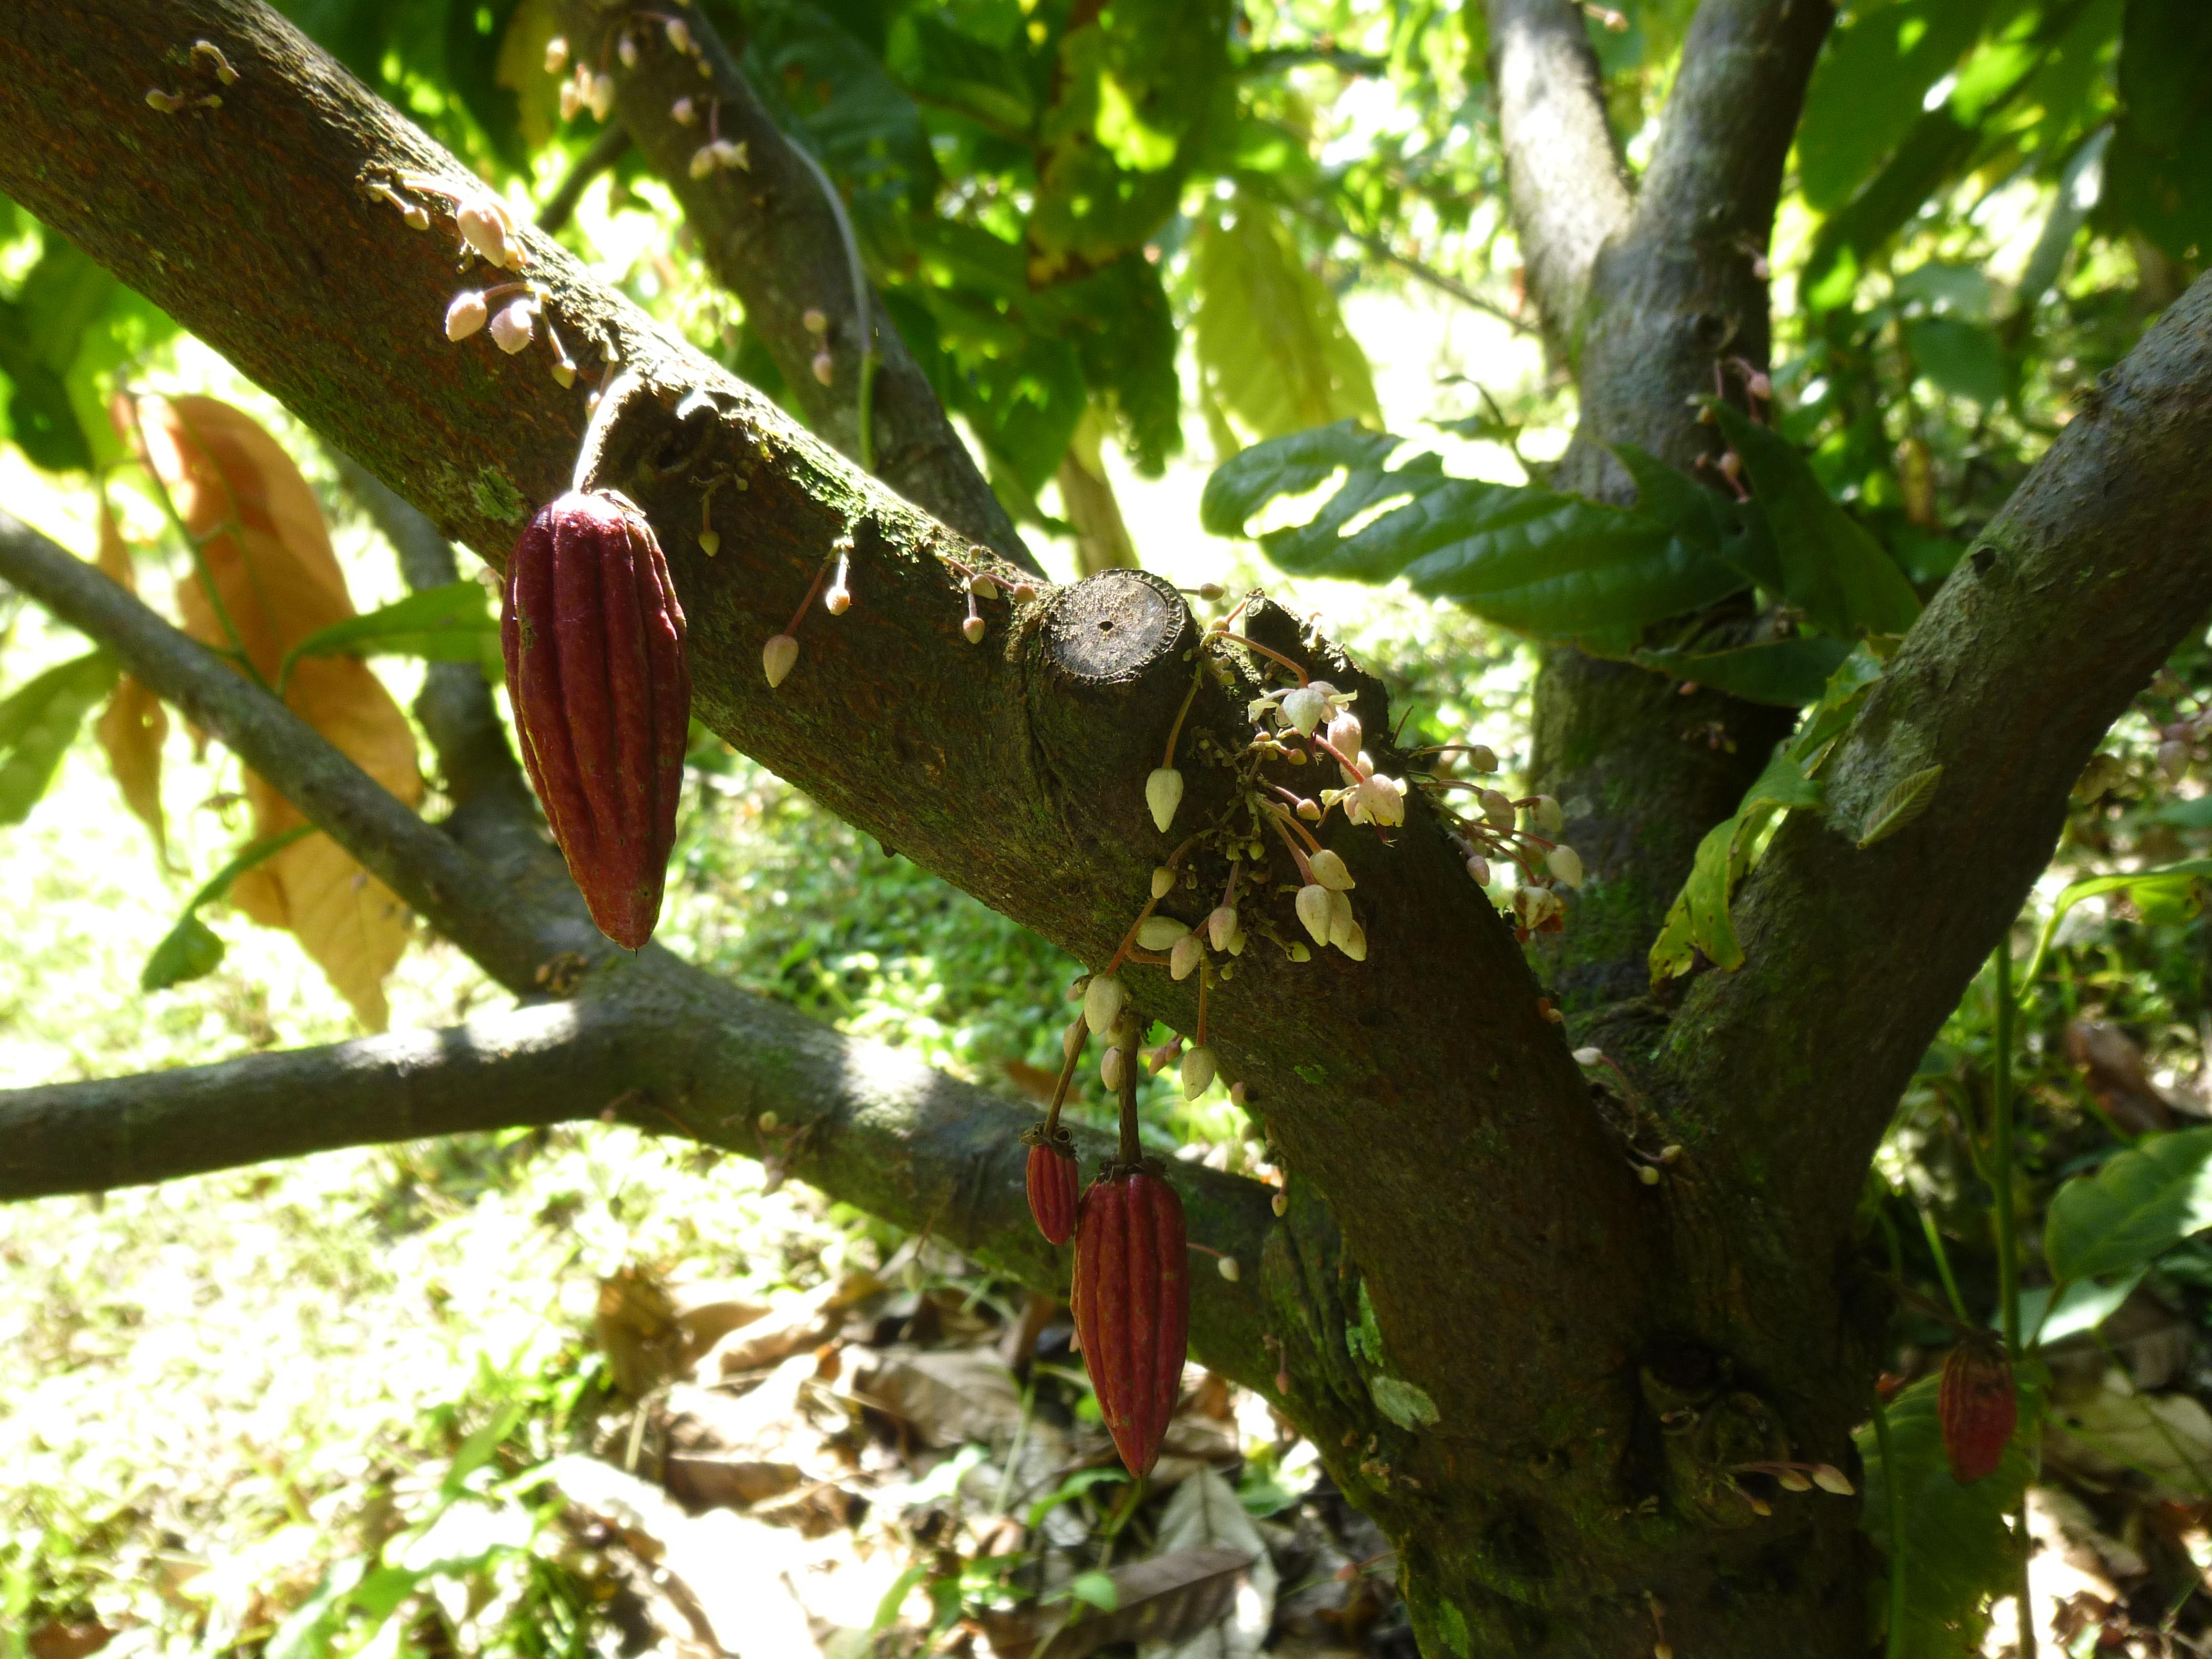 Guatemala Cacao Pods on Tree - Interview: Emily Stone, Co-Founder Of Uncommon Cacao